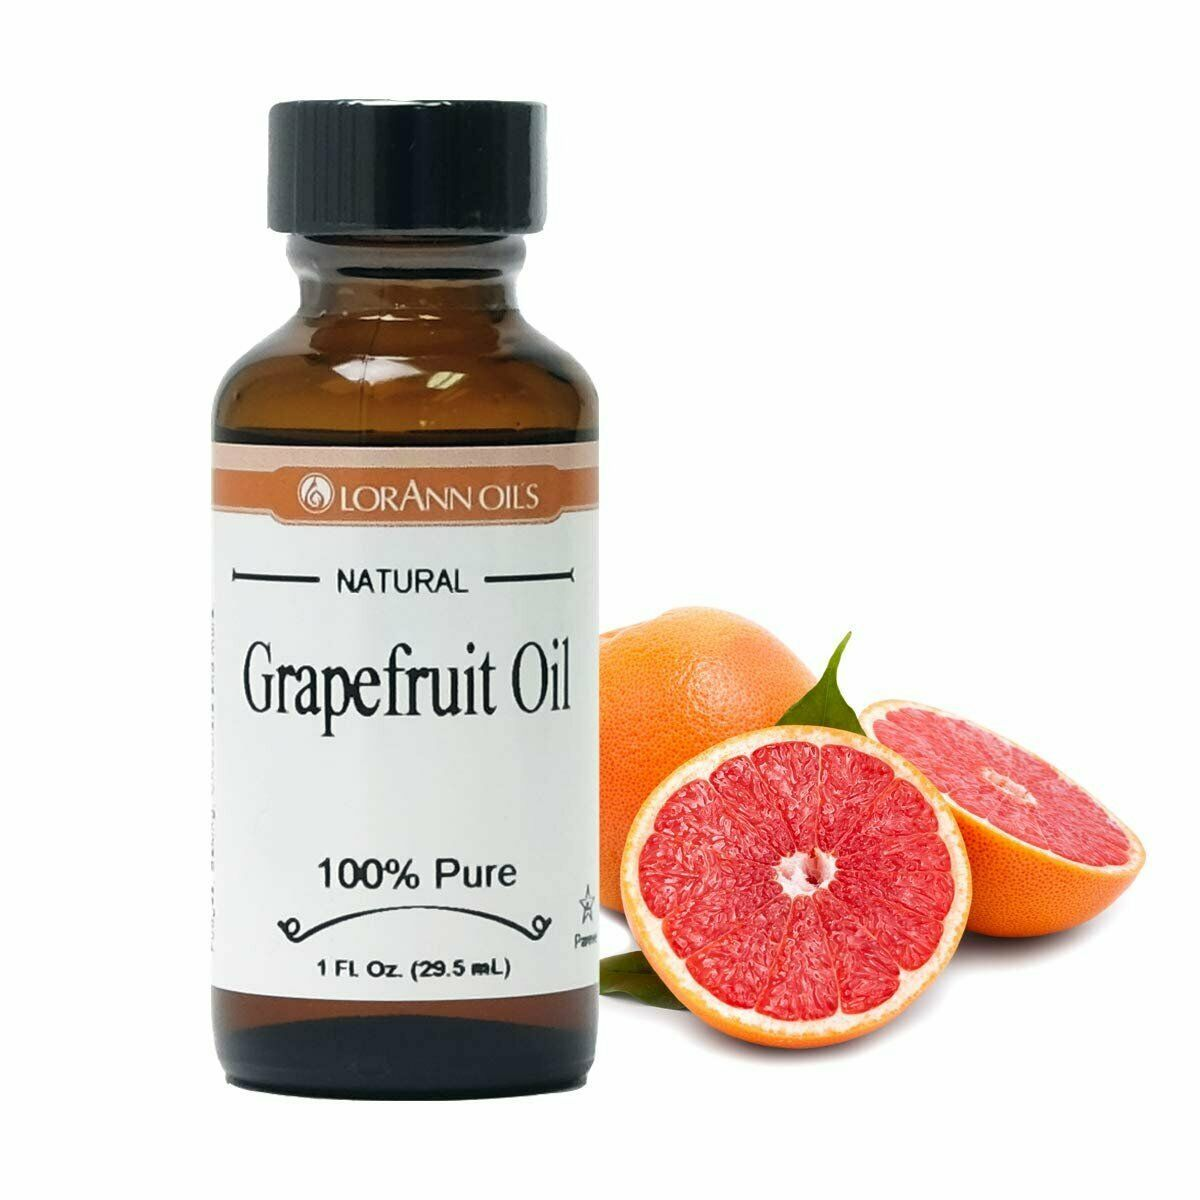 LorAnn Oils Flavorings and Essential Oils, Grapefruit, 1 ounce - $9.39